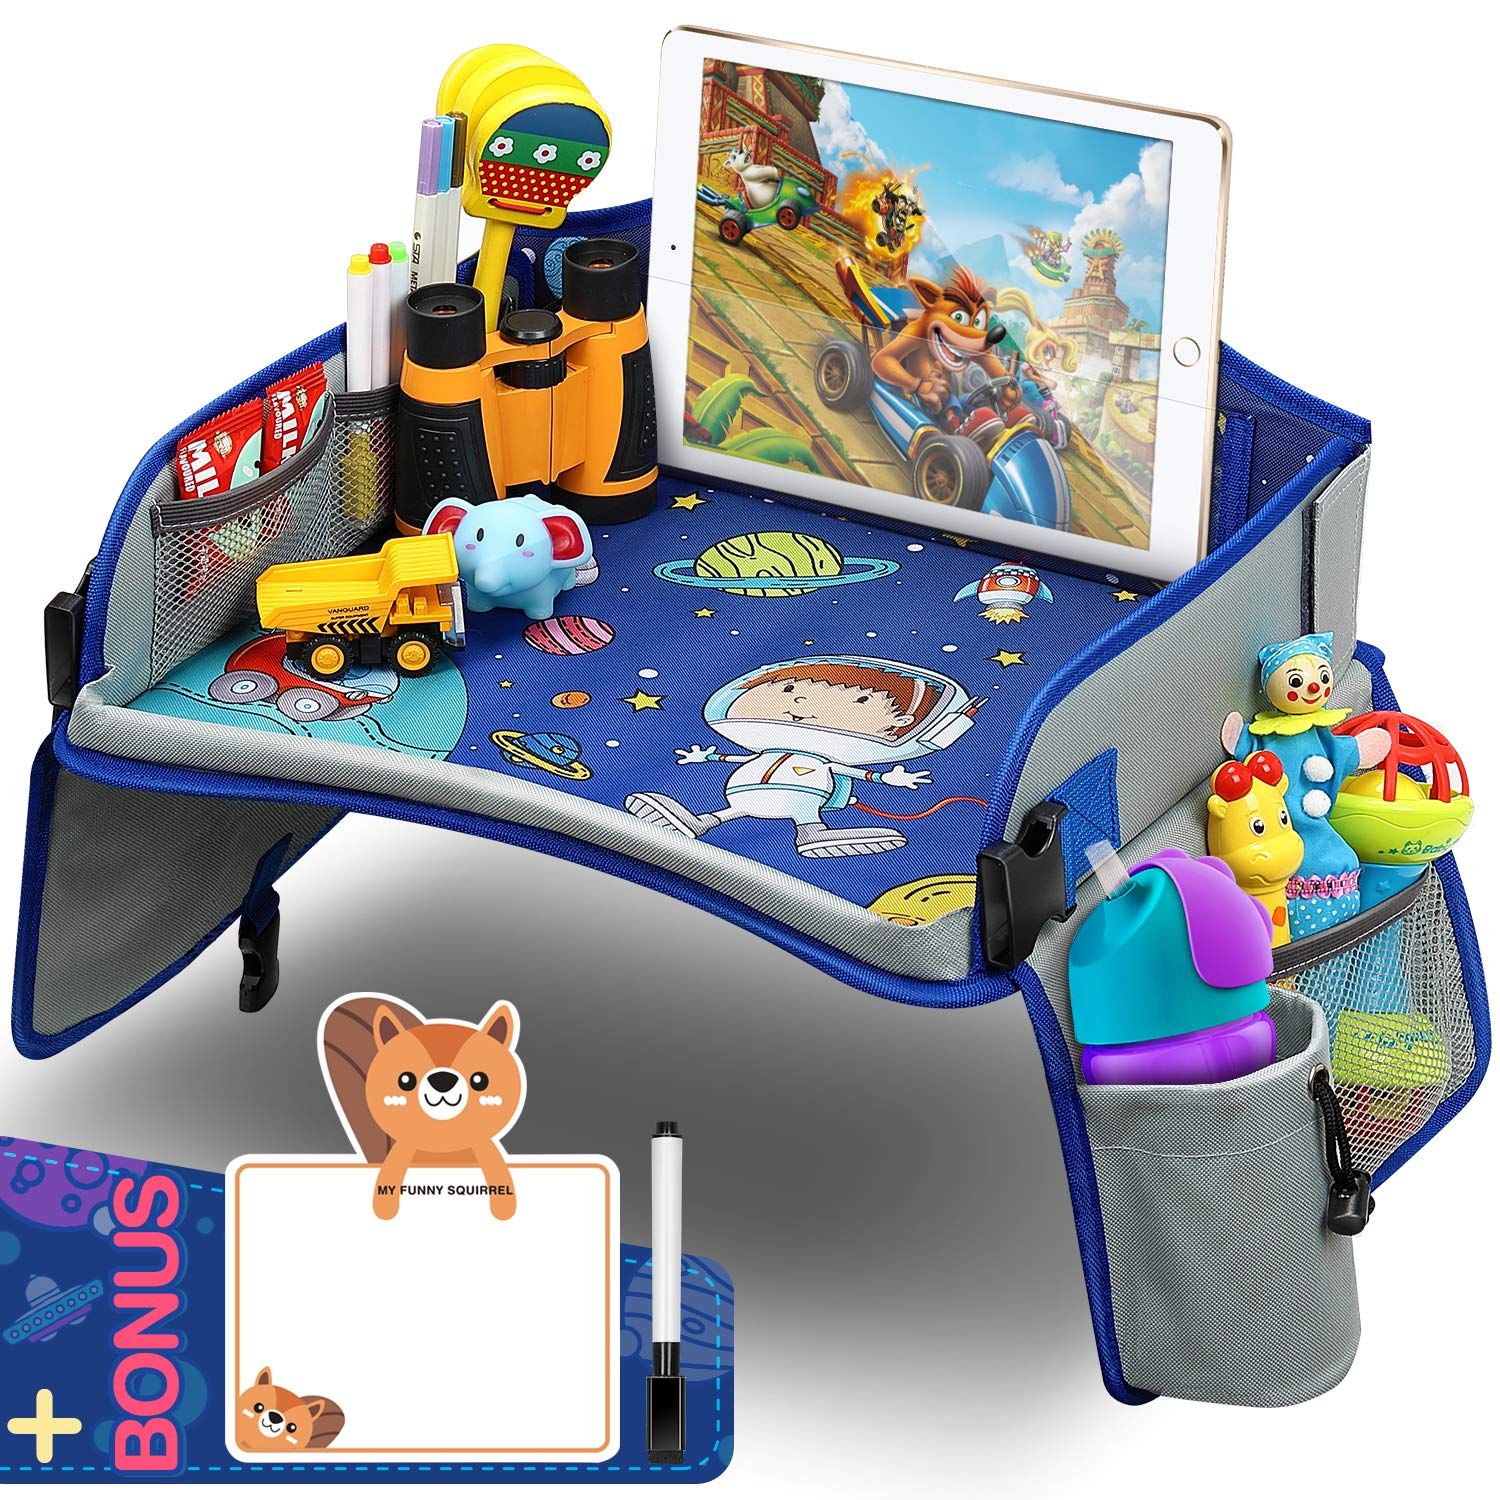 Kids Travel Tray, Car Seat Travel Tray With Colorful Space Top Toddler Car Seat Activity Tray More Organizer Pockets Large iPad & Cup Holder CarSeatTable For Stroller Airplane